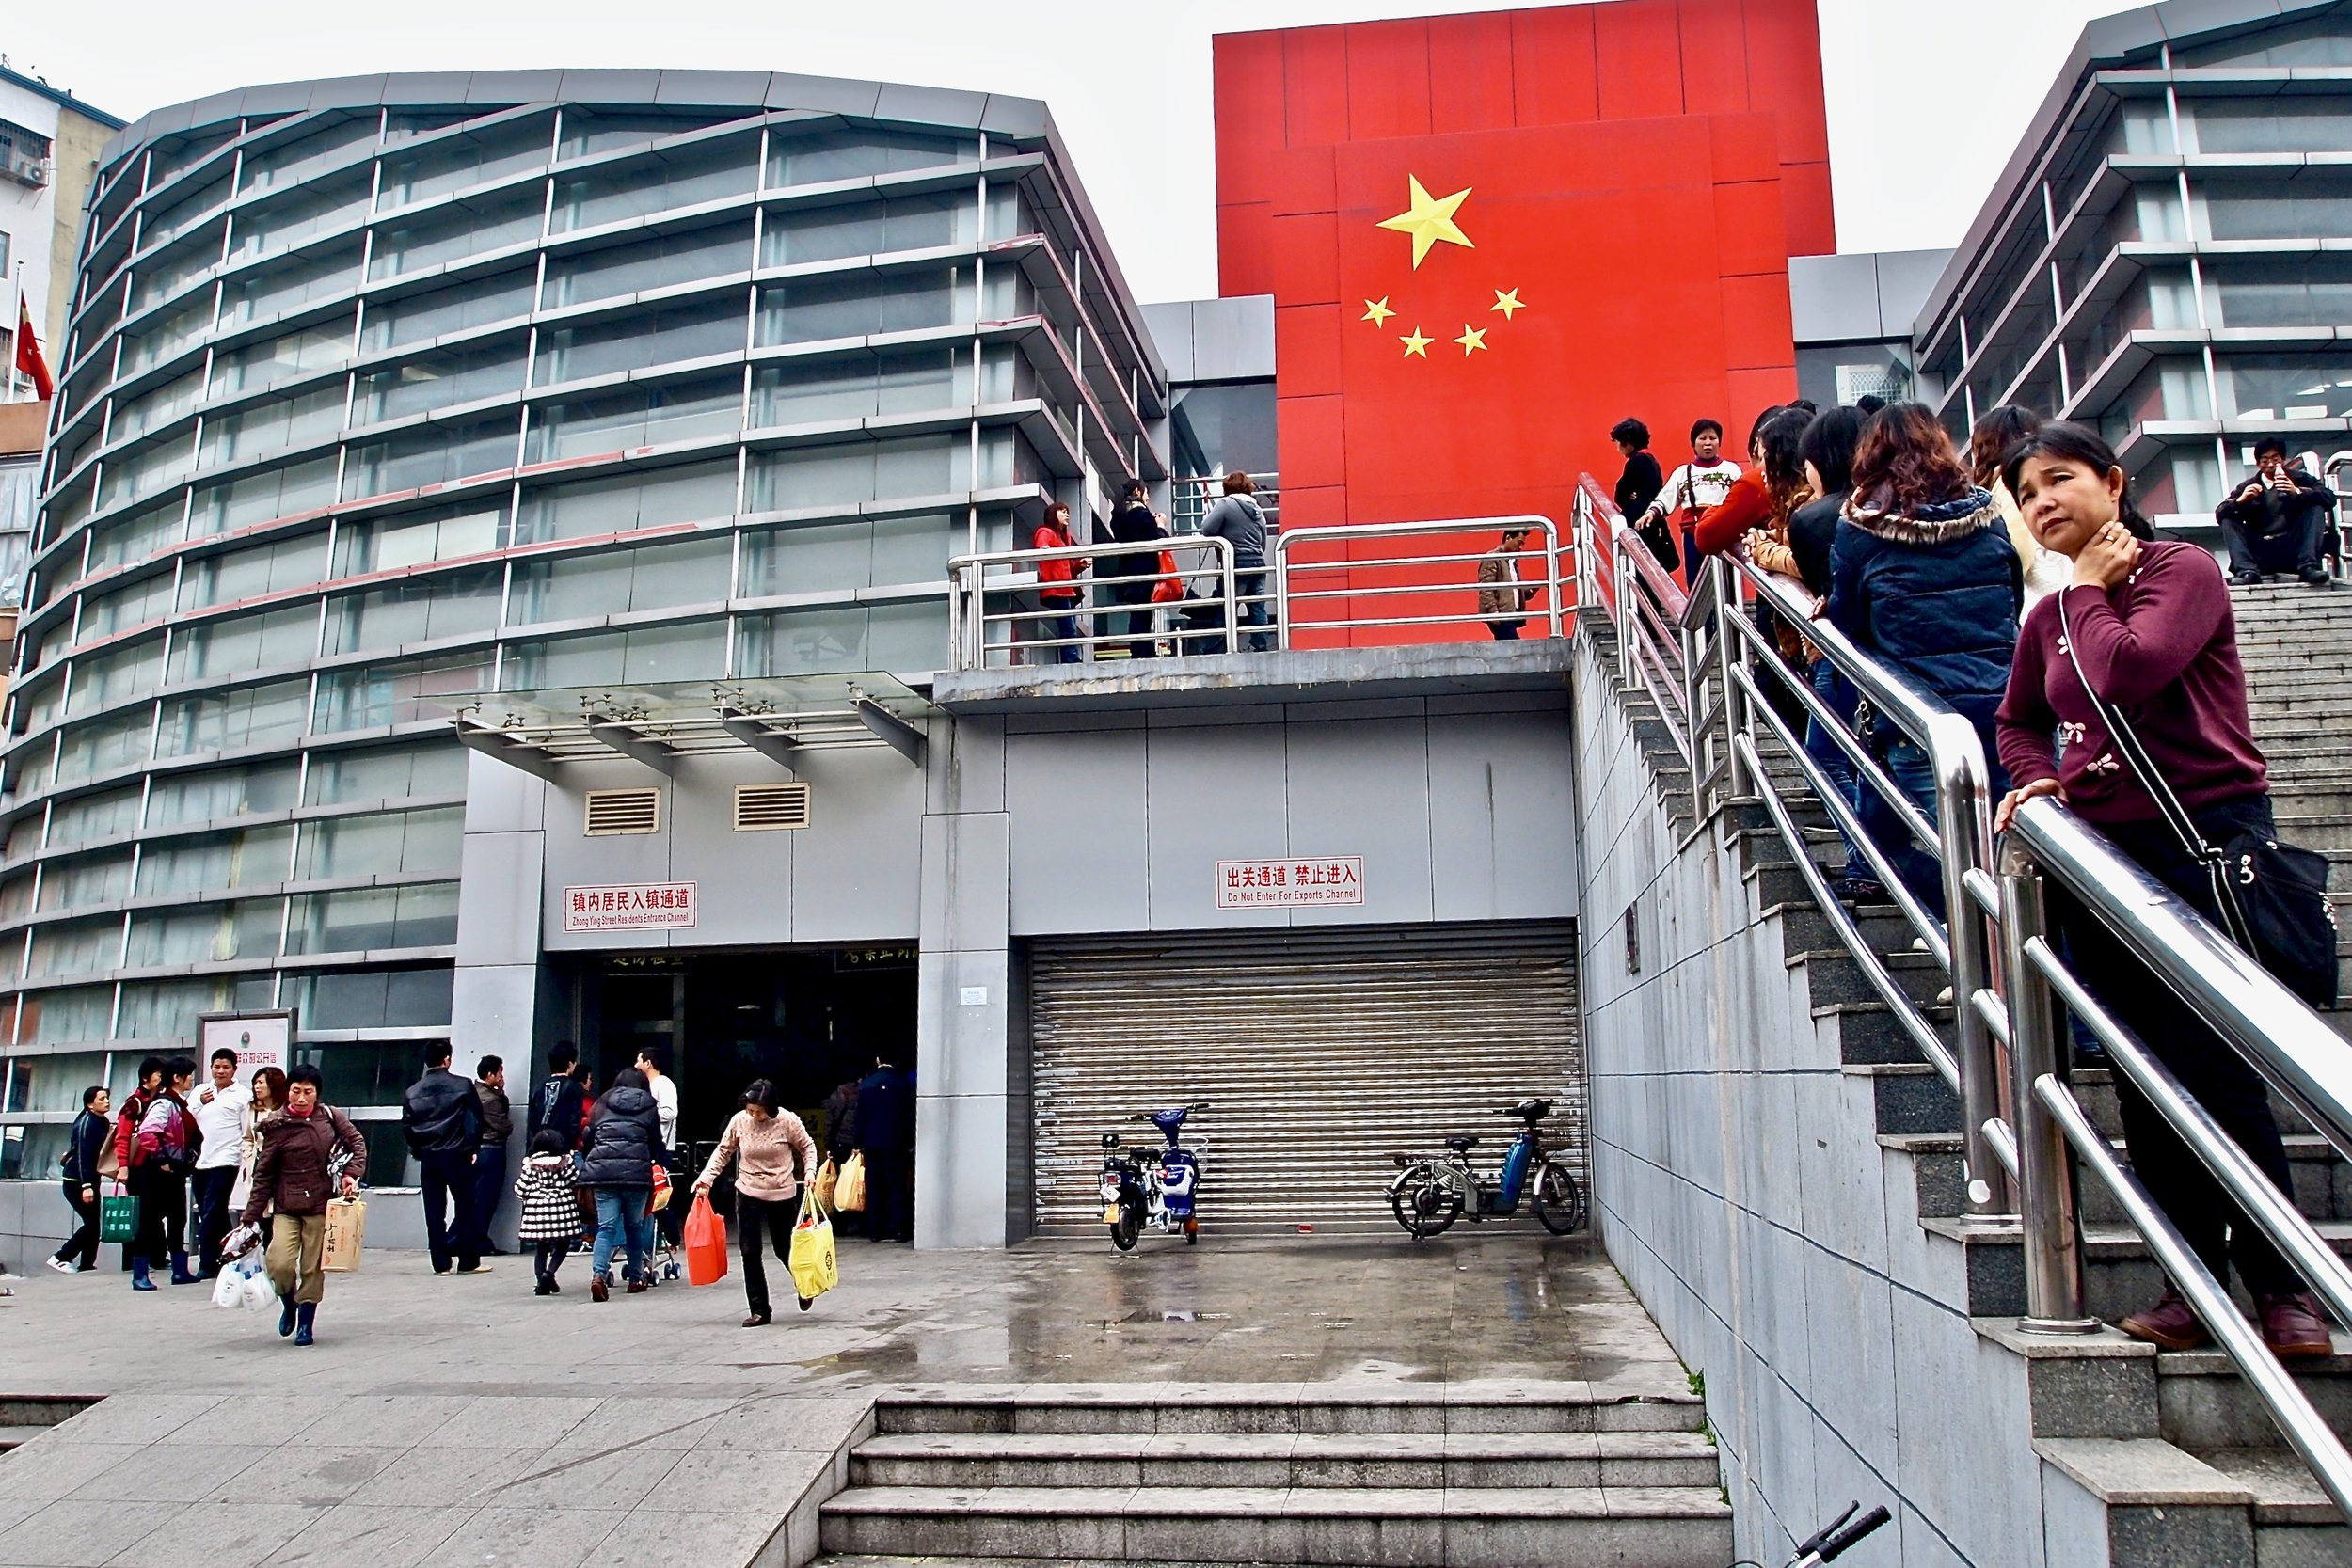 A border crossing between Shenzhen in mainland China and Hong Kong, only open to local residents. (C) Remko Tanis